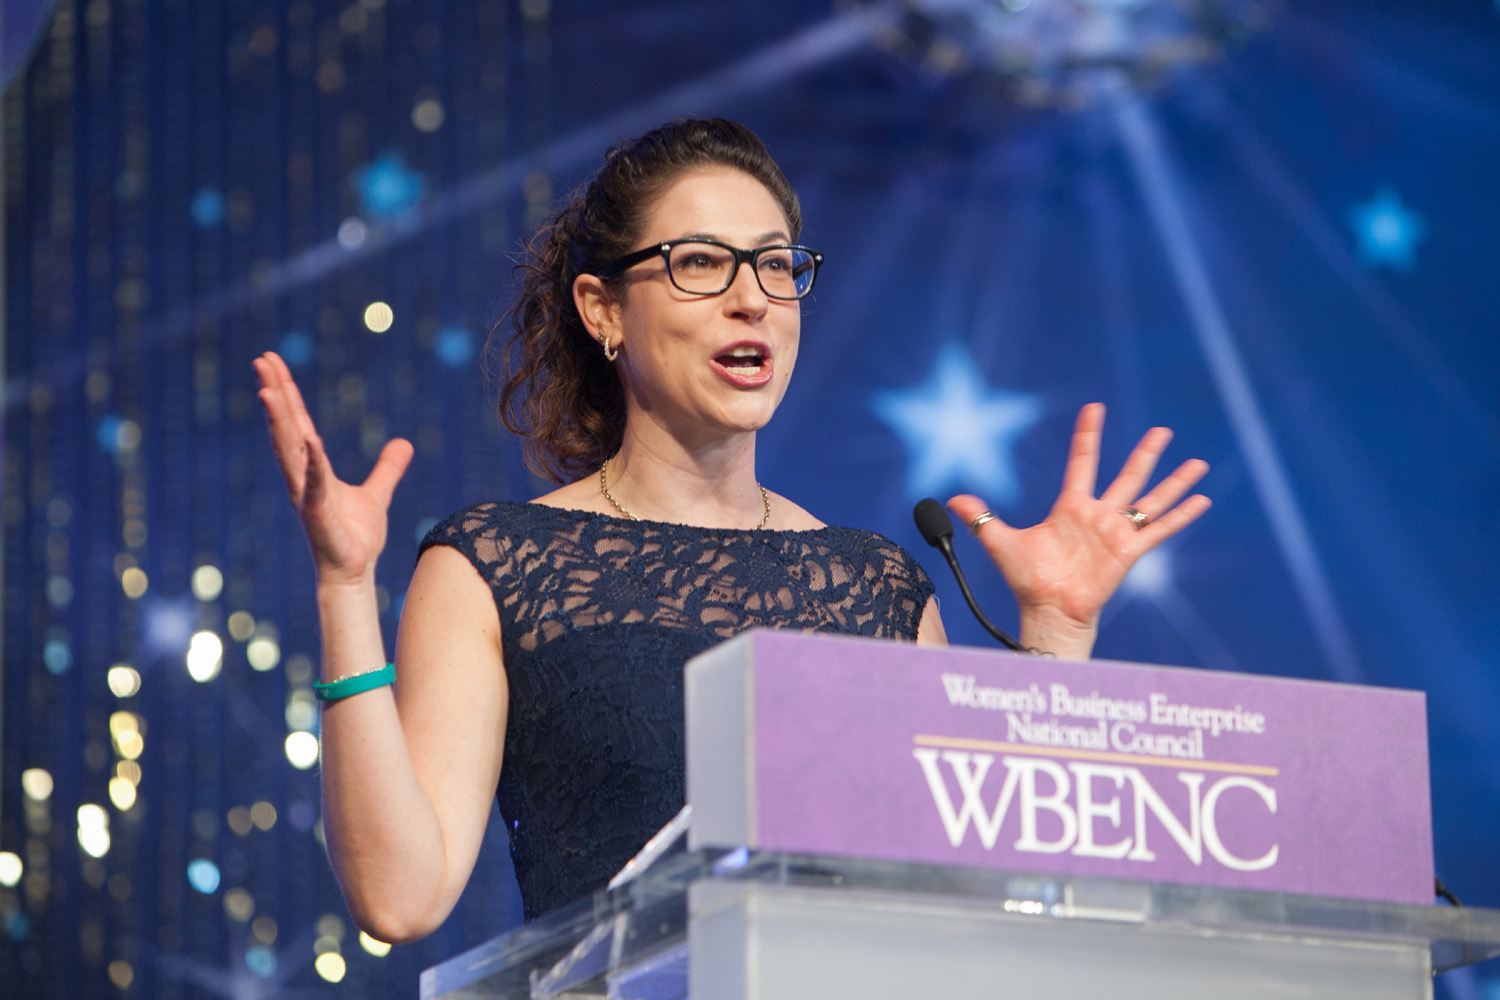 Ya-El addresses the audience at the 2016 WBENC Tribute dinner during the National Conference & Business Fair.